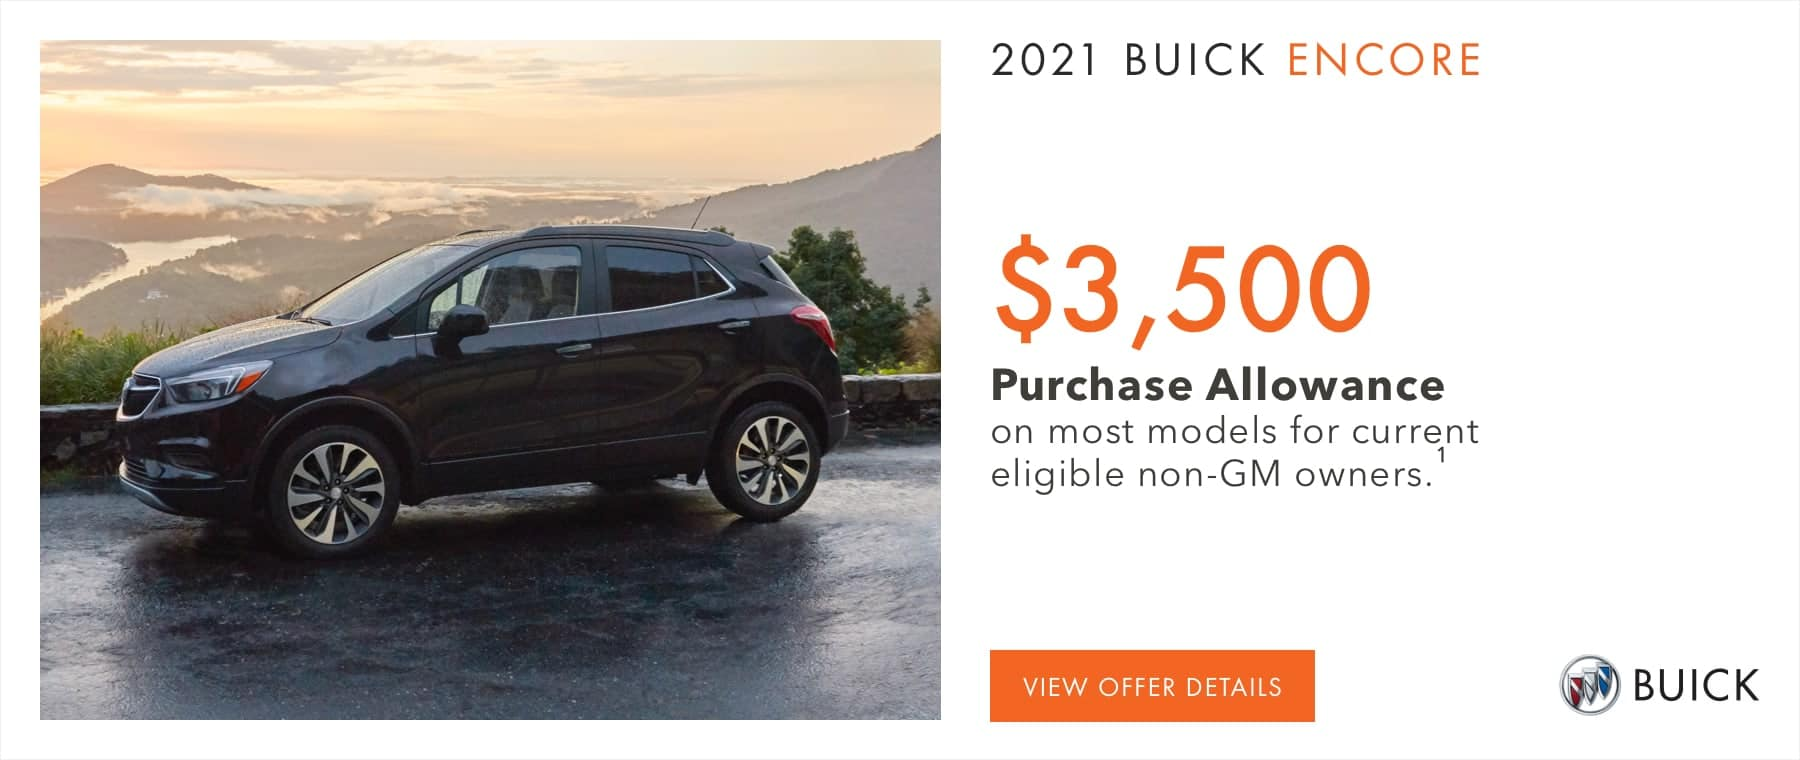 $3,500 Purchase Allowance on most models for current eligible non-GM owners.